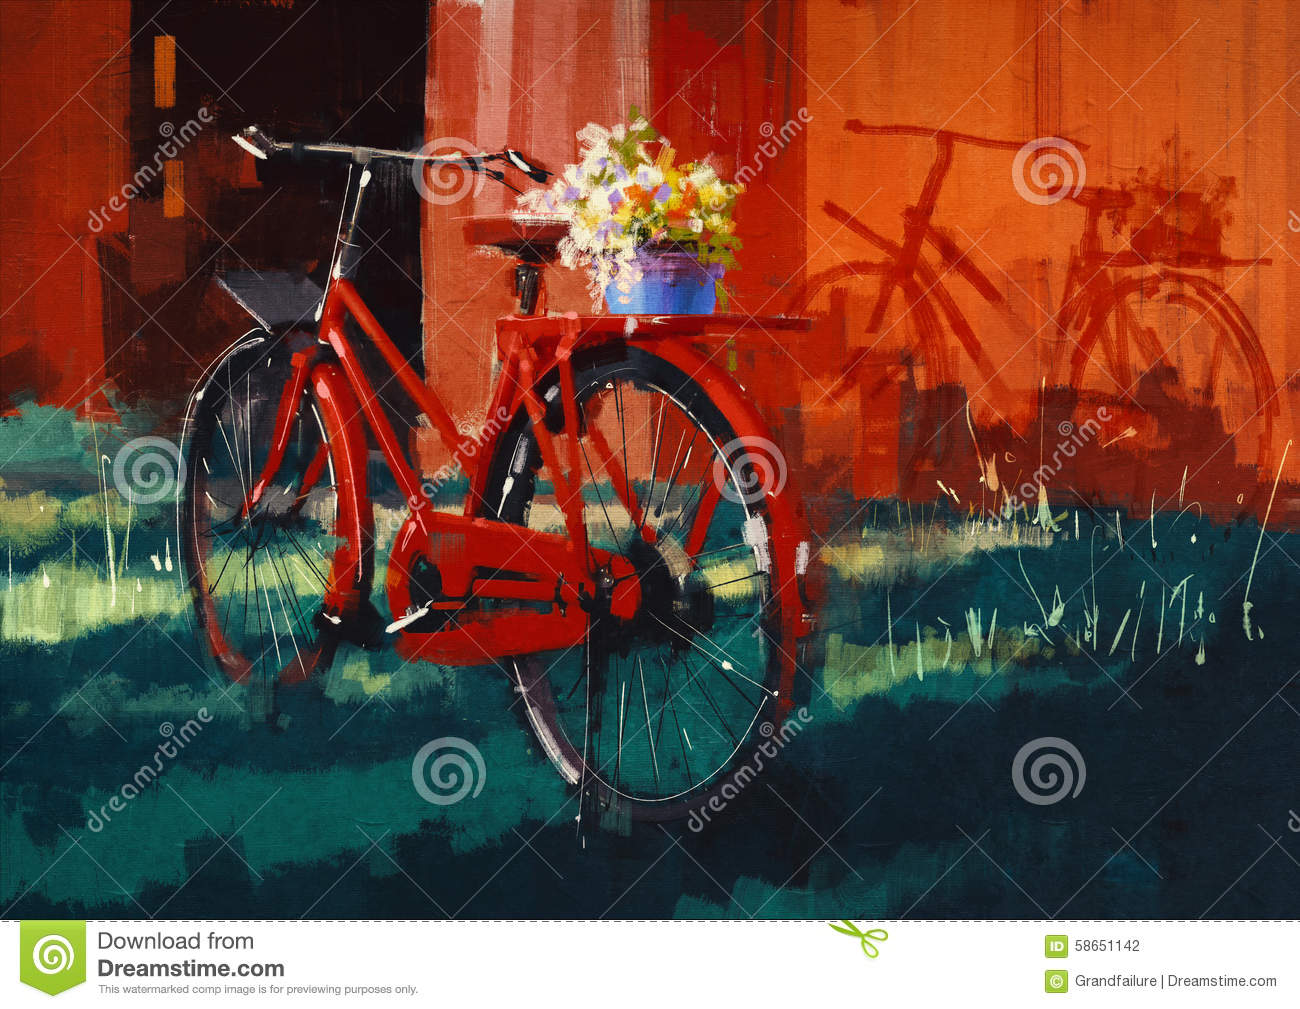 Vintage bicycle with bucket full of flowers